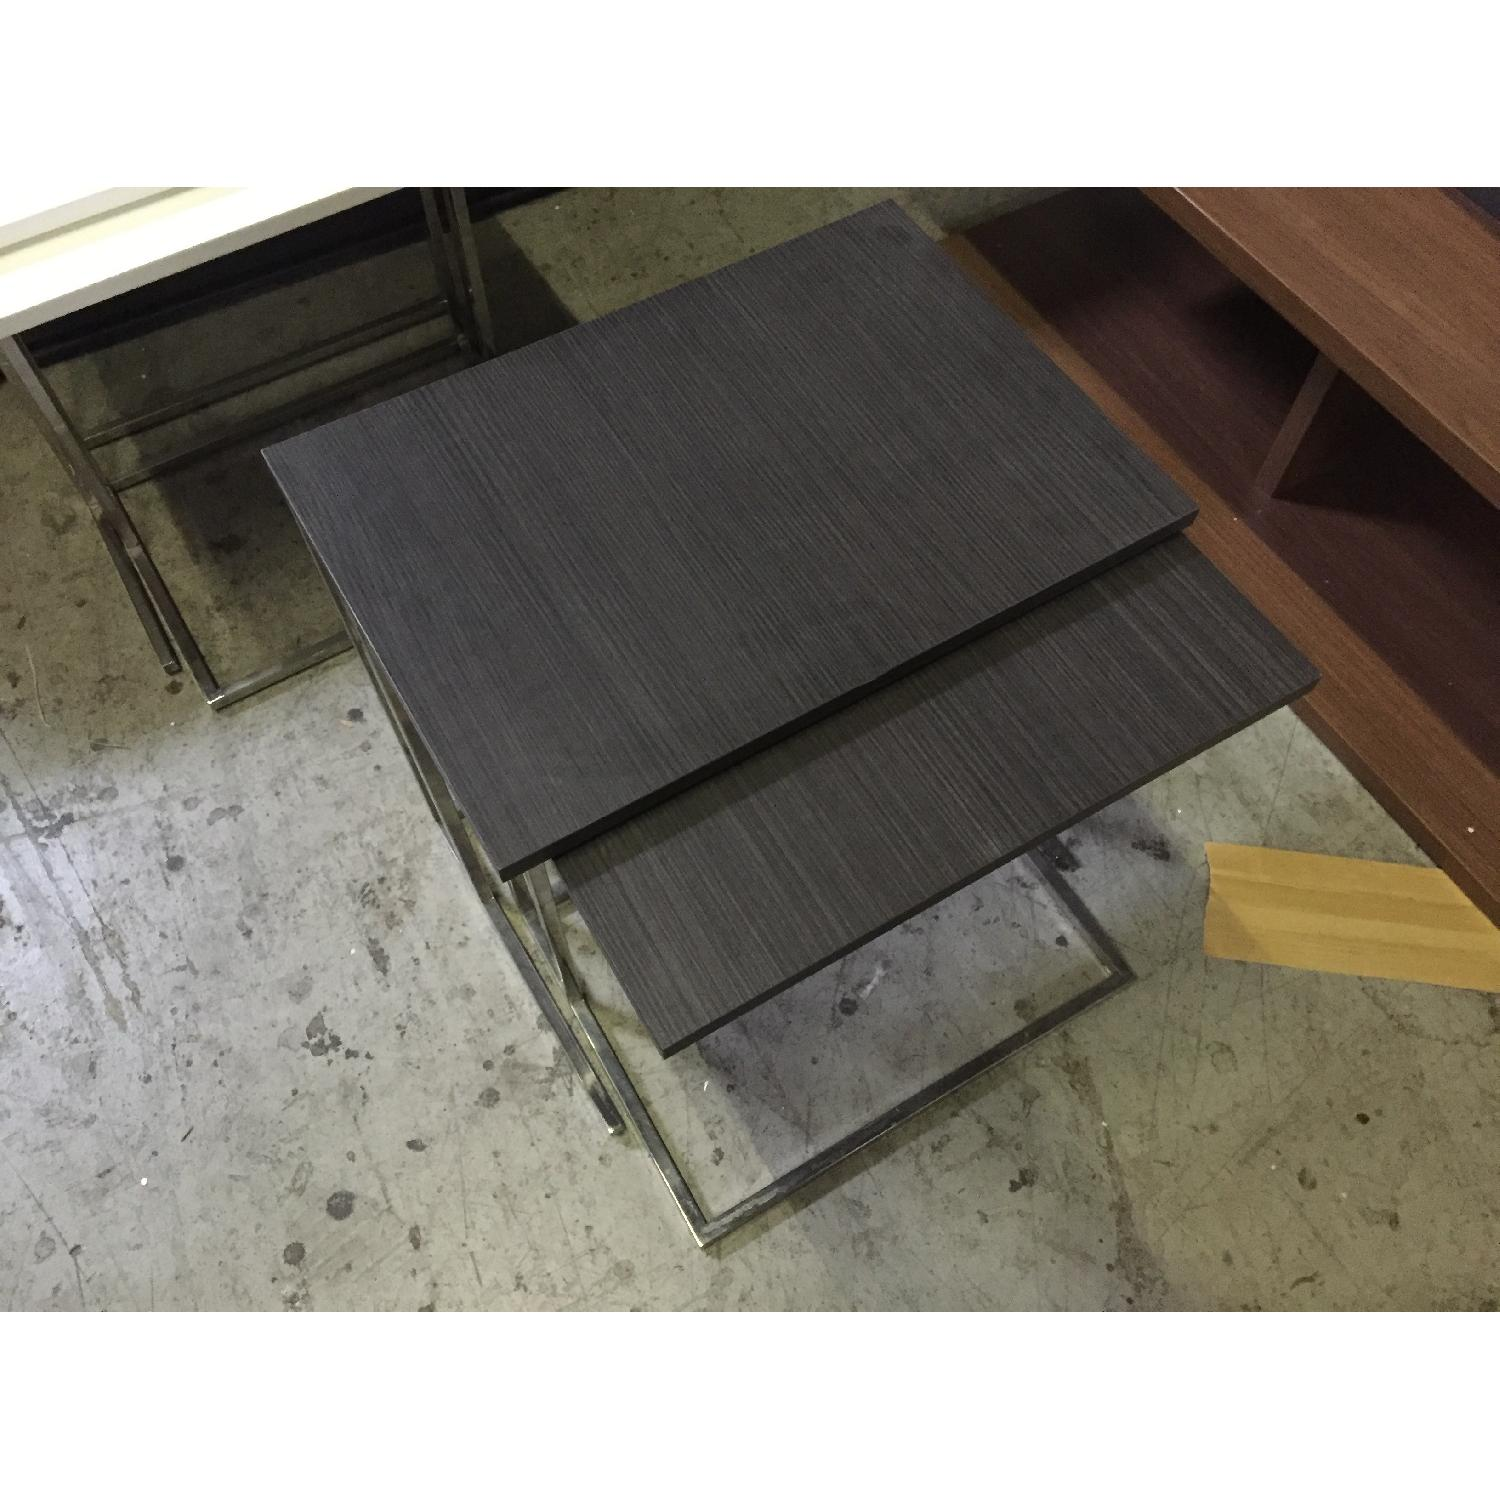 Lazzoni Brown Wood Nesting Tables - image-3